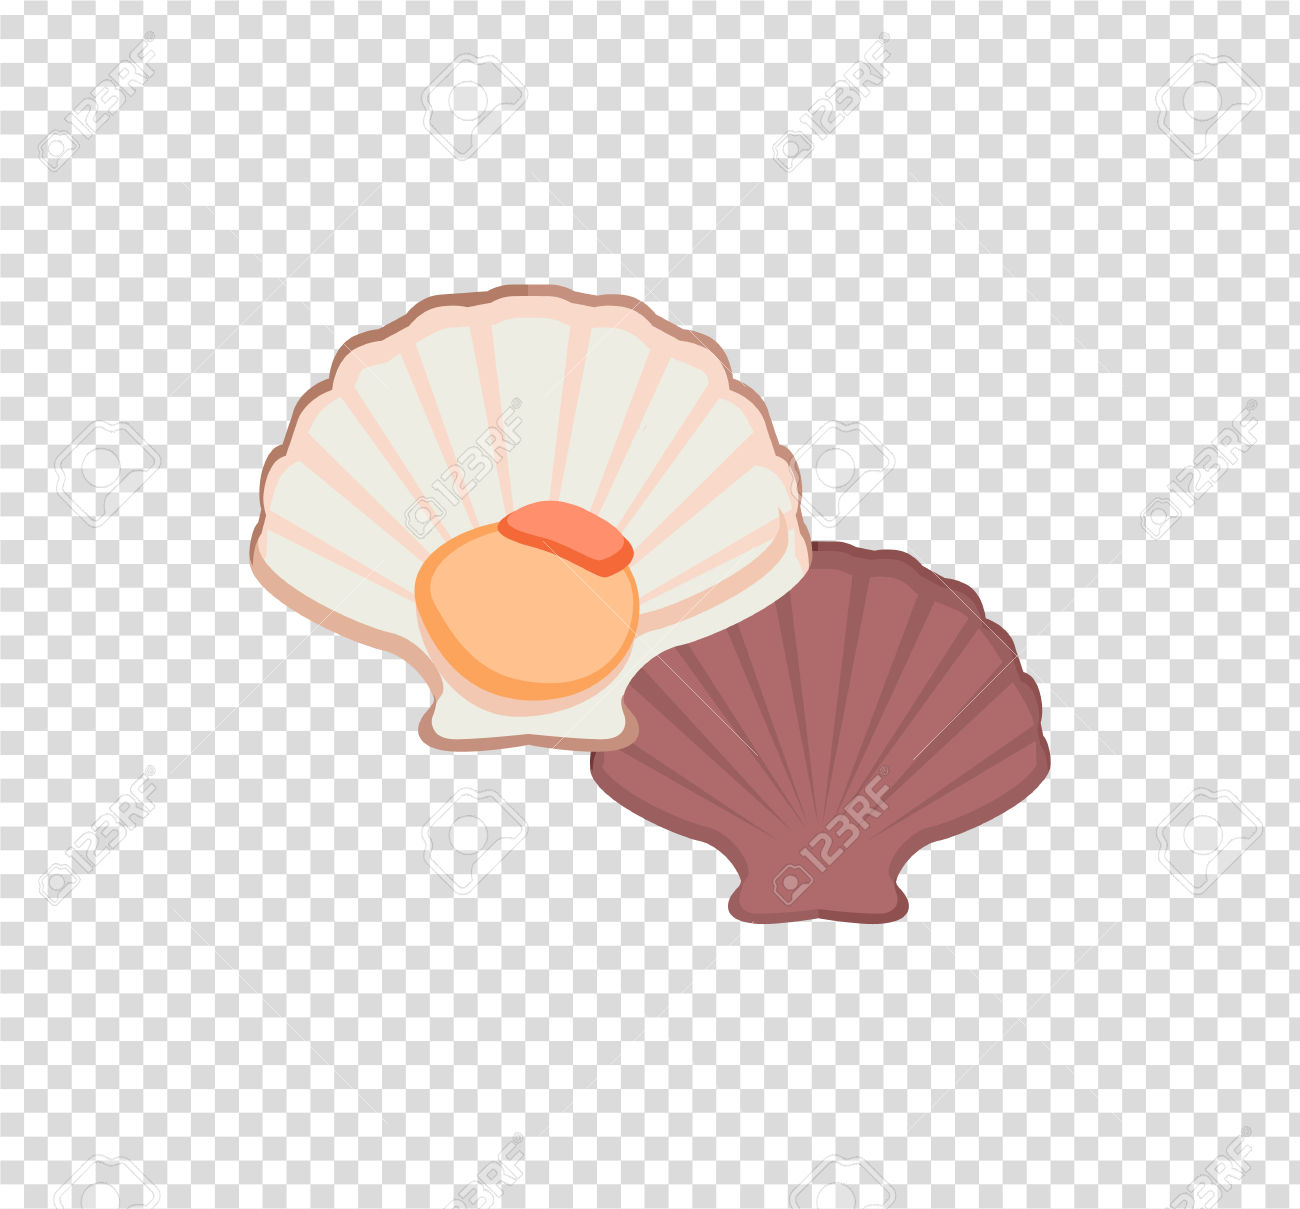 Oysters In Colour Variant. Seafood Concept Icons In Flat Style.